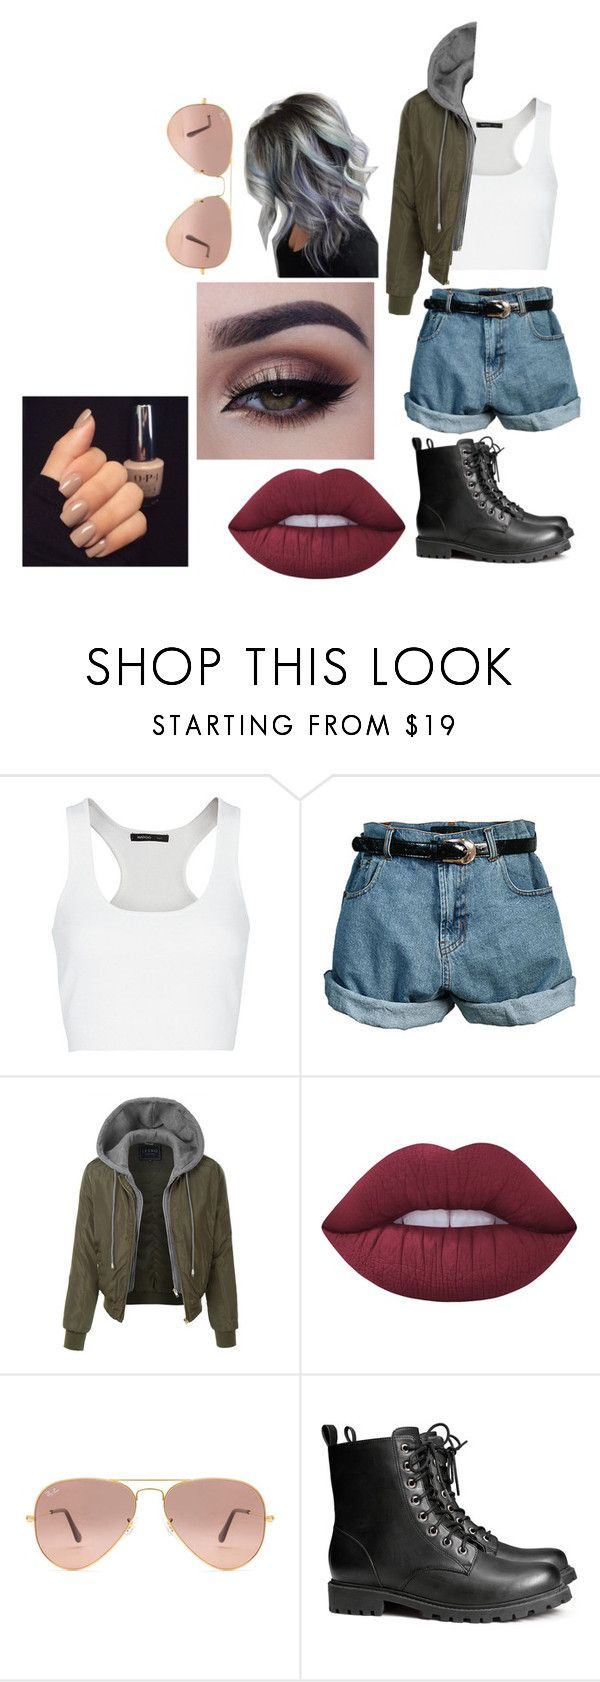 """""""Untitled #1978"""" by hey-mate ❤ liked on Polyvore featuring MANGO, Retrò, LE3NO, Lime Crime, Ray-Ban and H&M"""